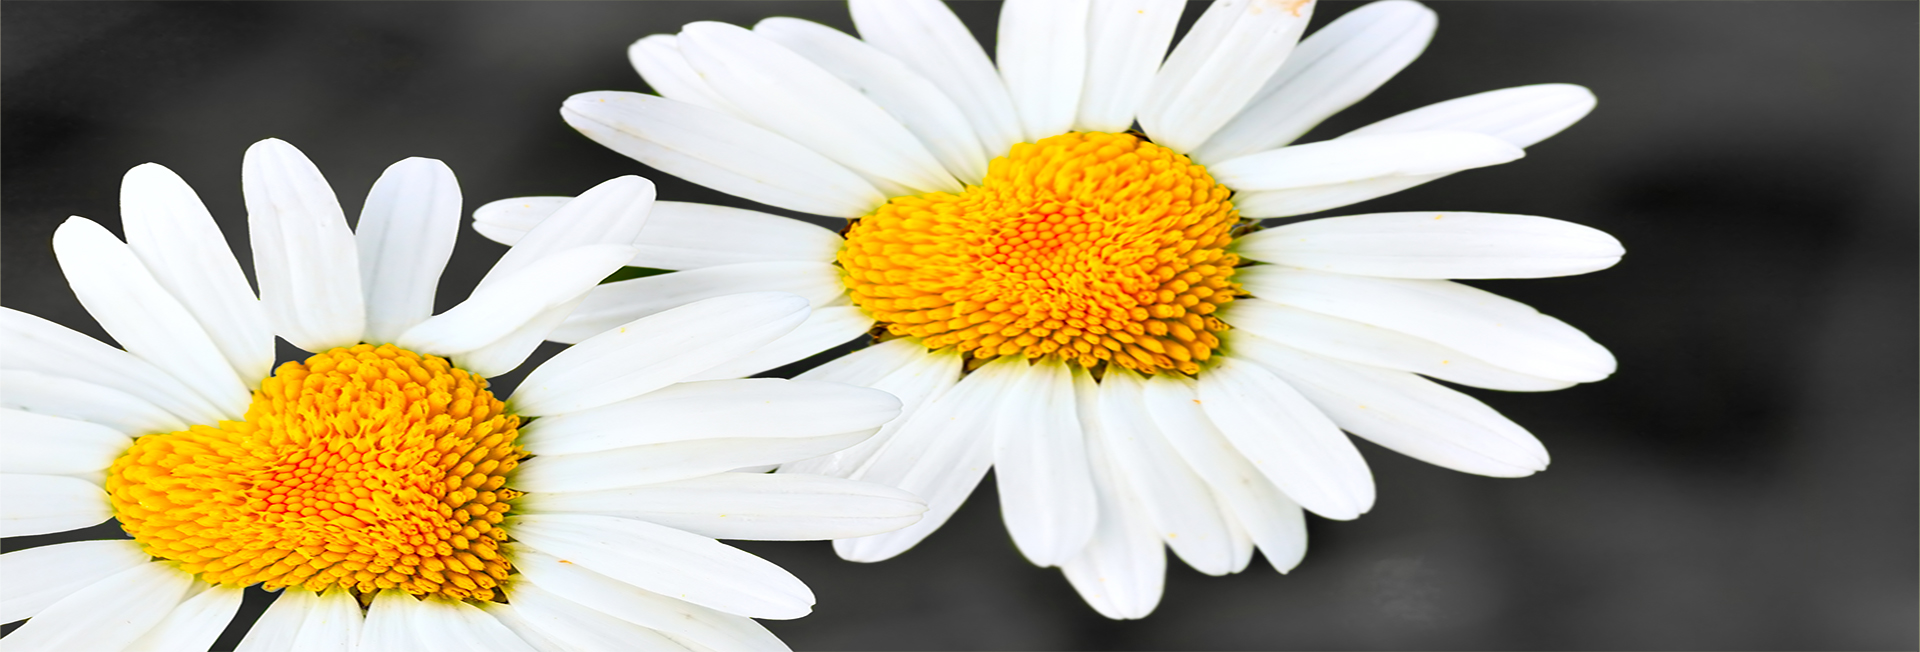 Two daisies with heart in center close-up